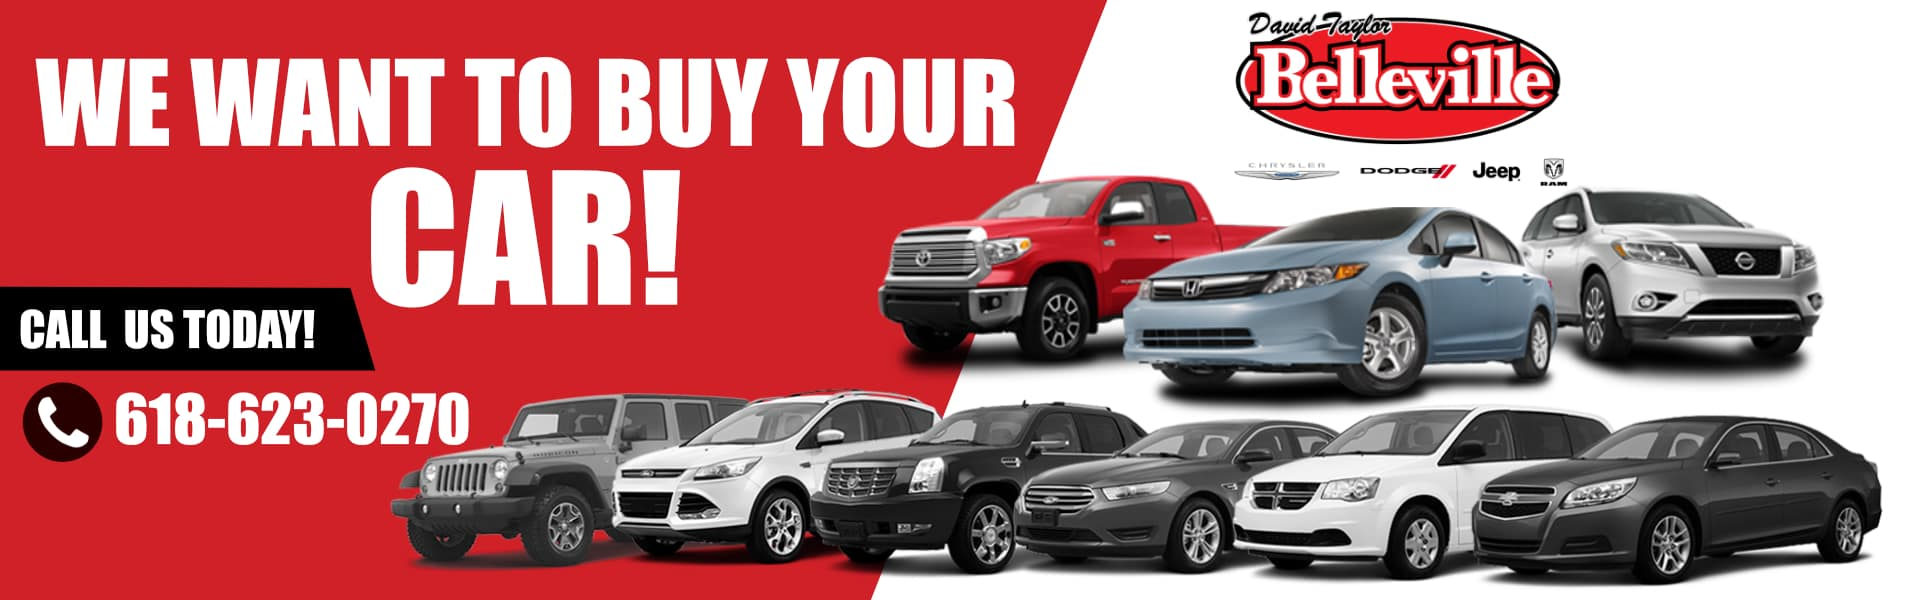 We_Wanyt_To_Buy_Your Car_DTB